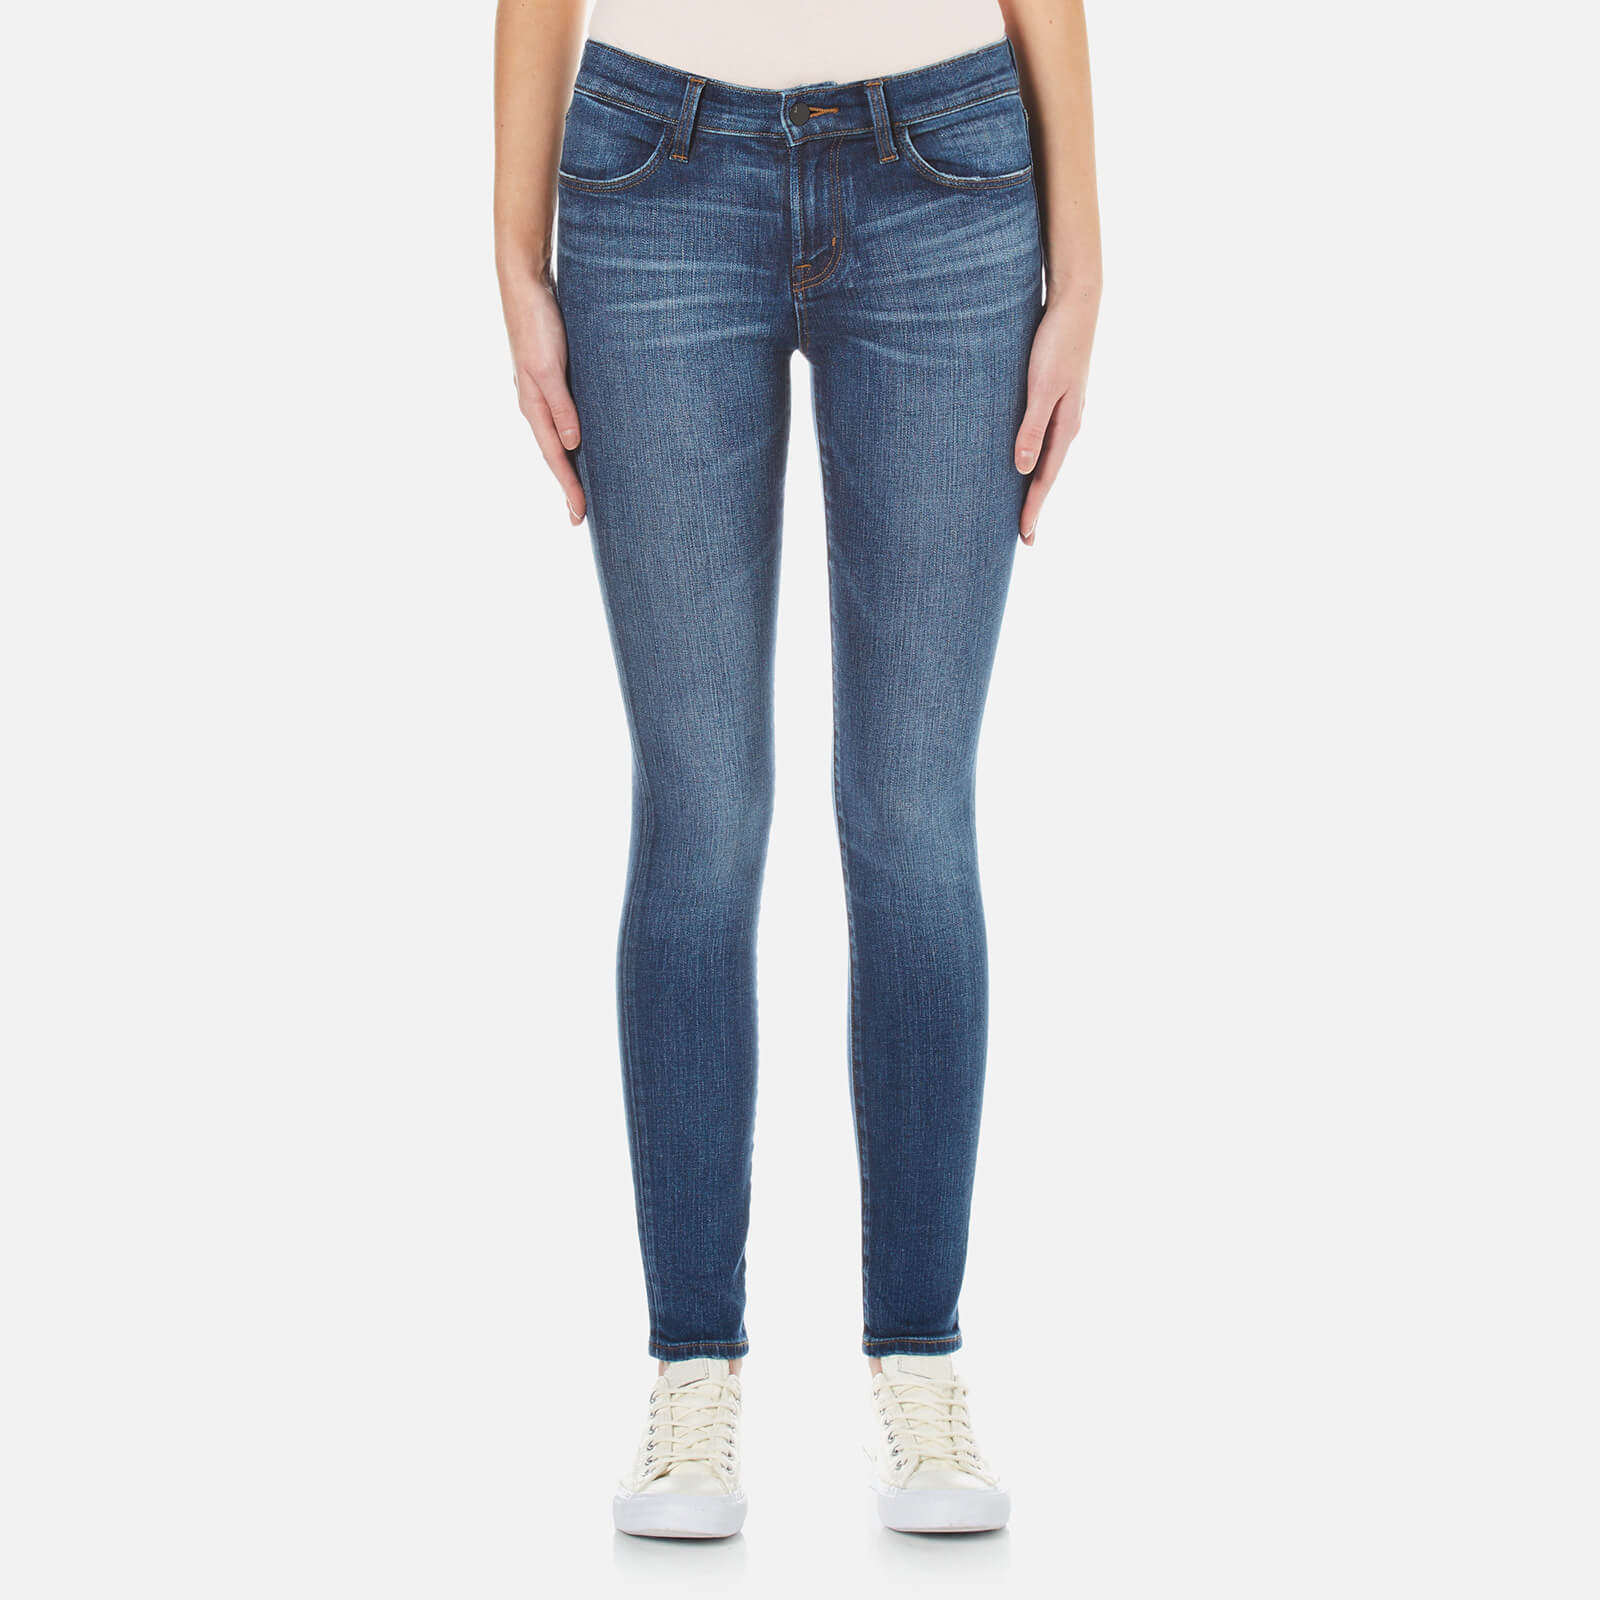 c3c3a7ffc8e4 J Brand Women s 620 Mid Rise Comfort Stretch Super Skinny Jeans - Decoy -  Free UK Delivery over £50